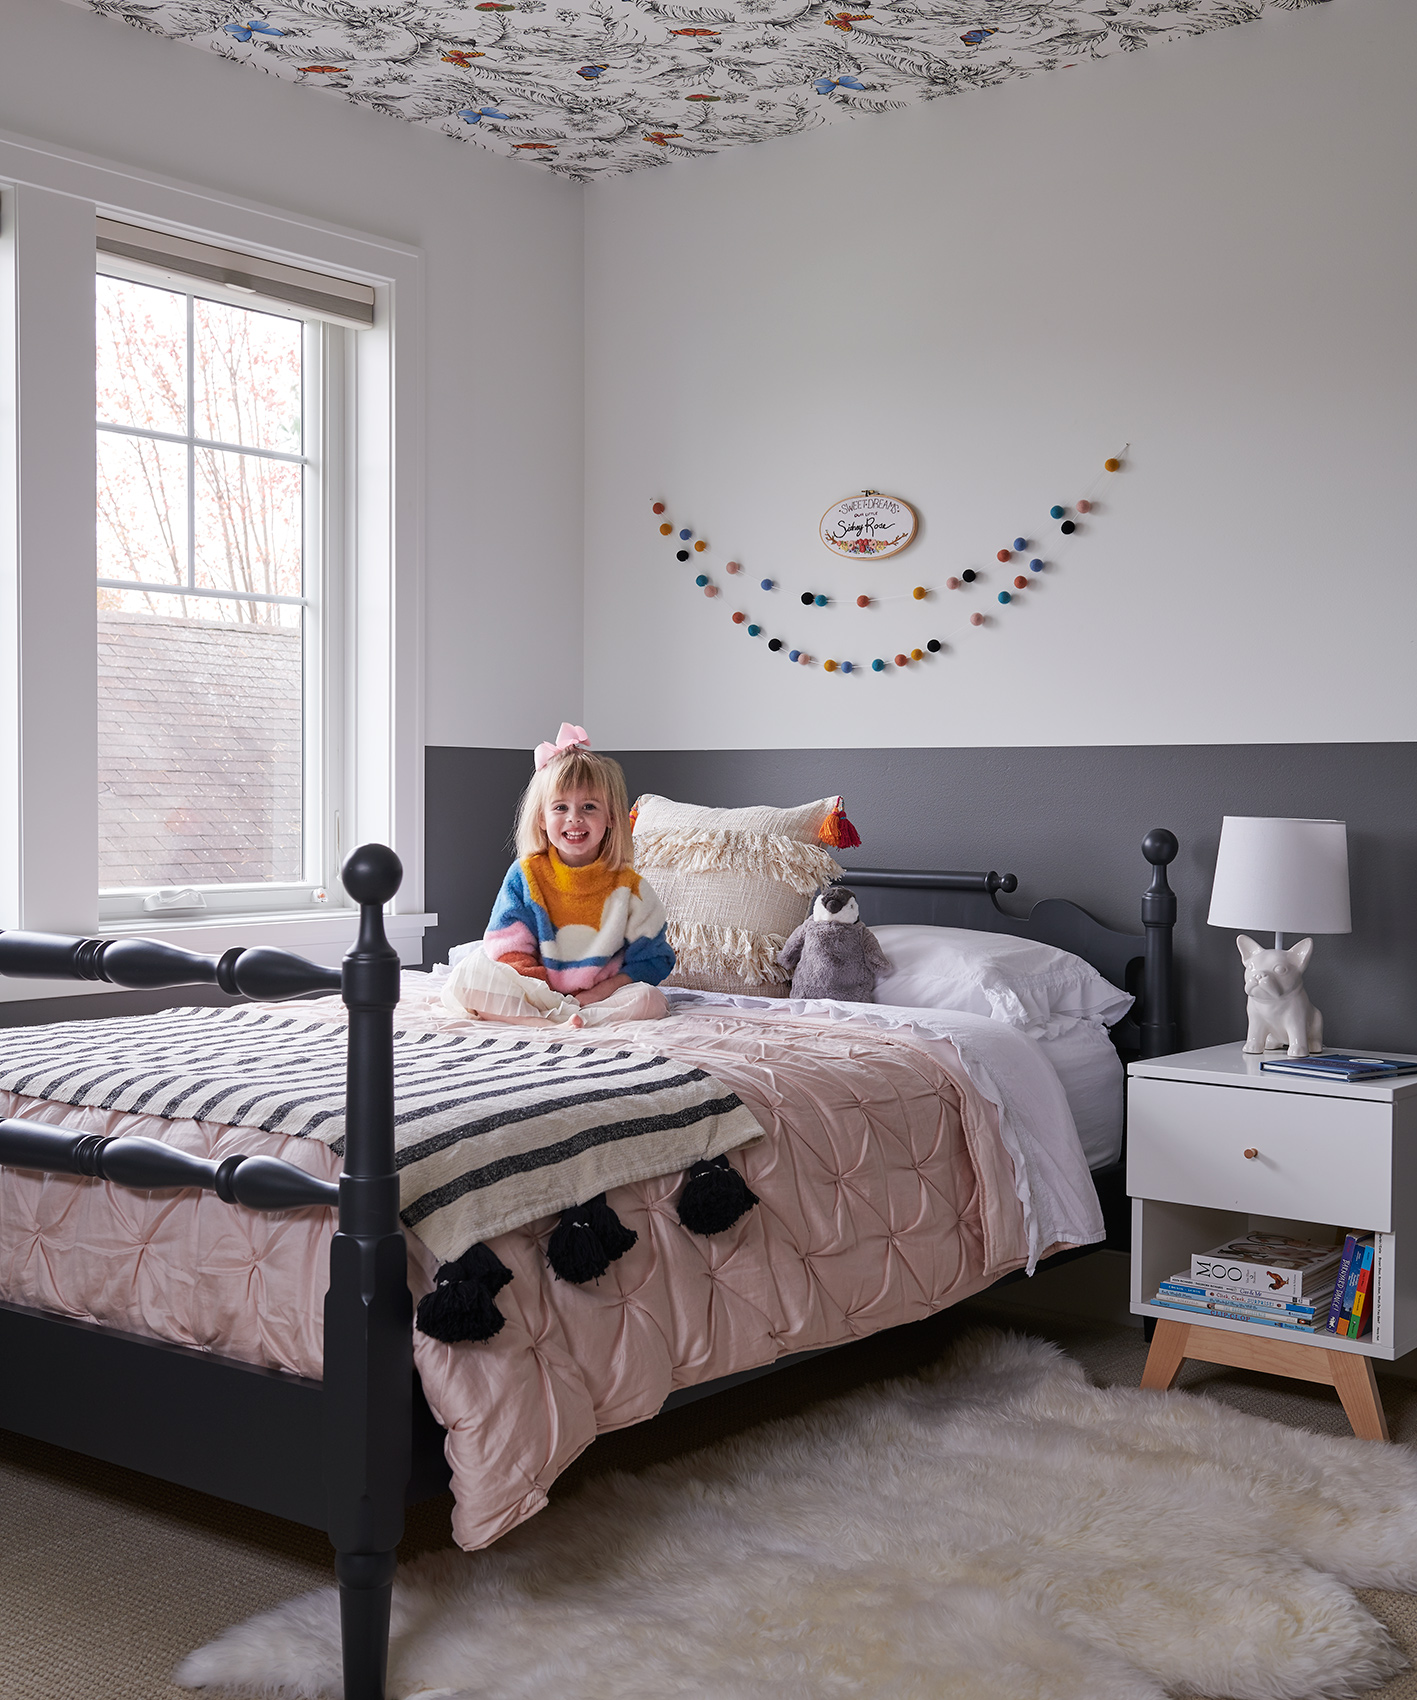 2019_11_MSP_Home_Design_0013_with_girl